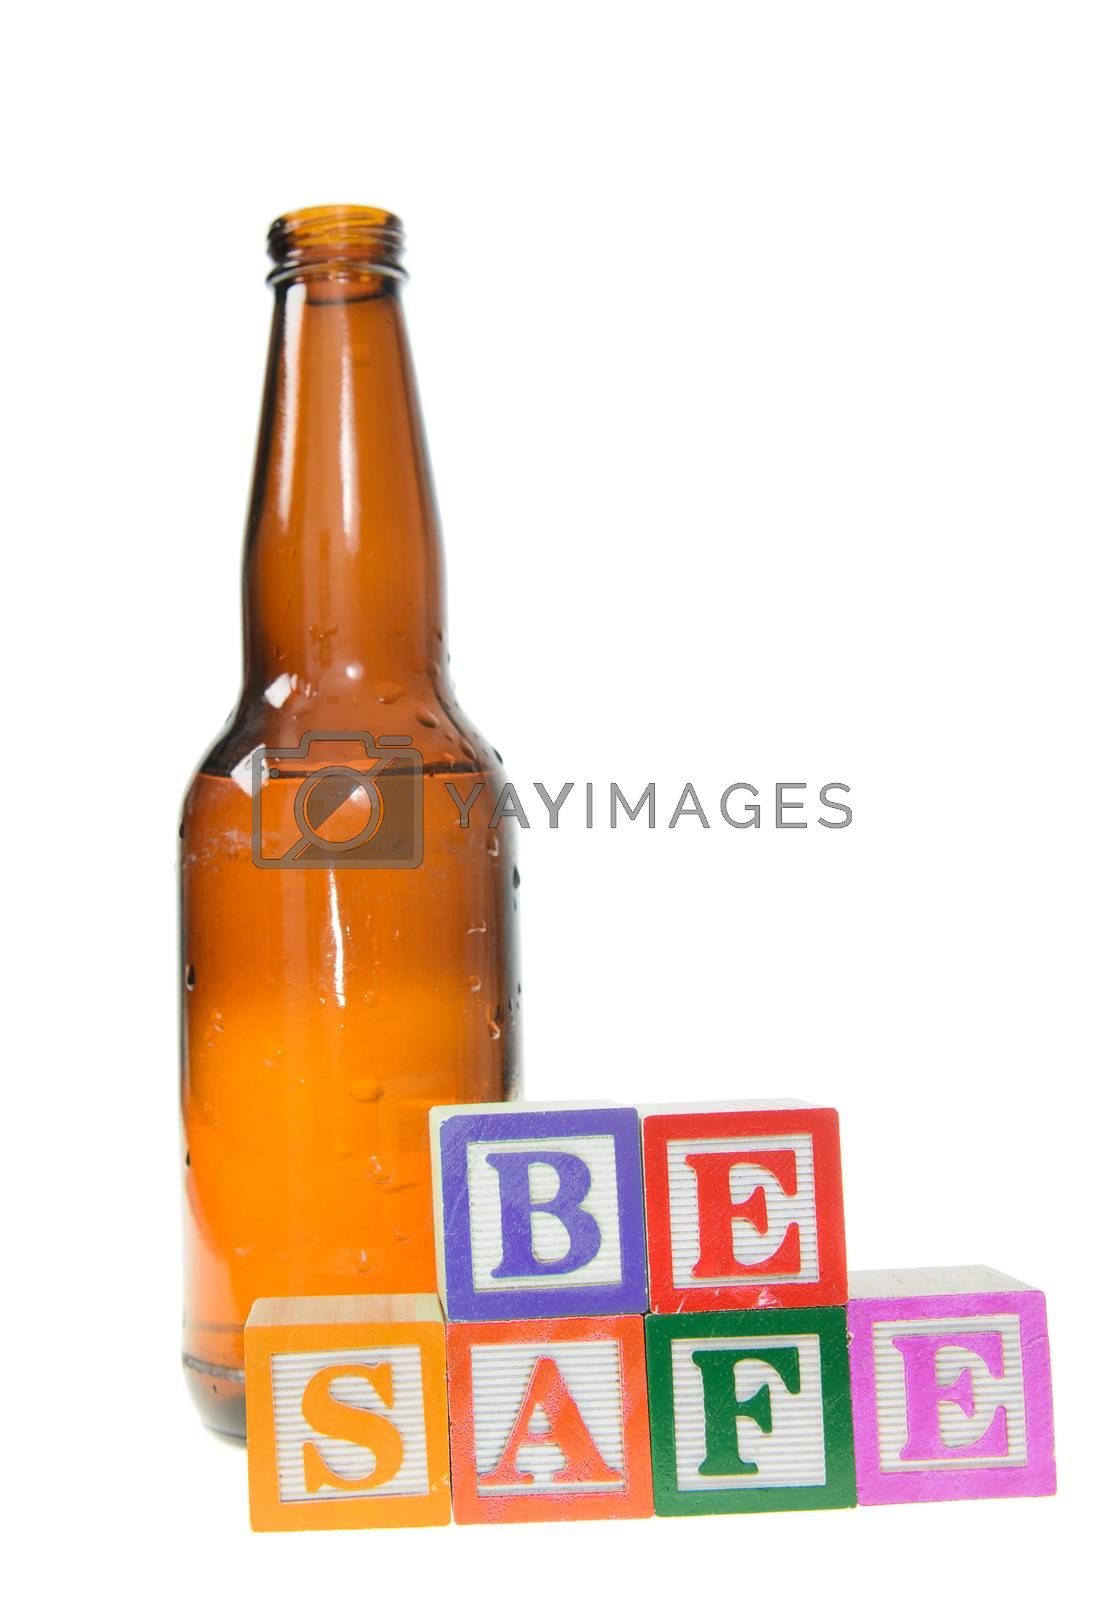 Letter blocks spelling be safe with a beer bottle. Isolated on a white background